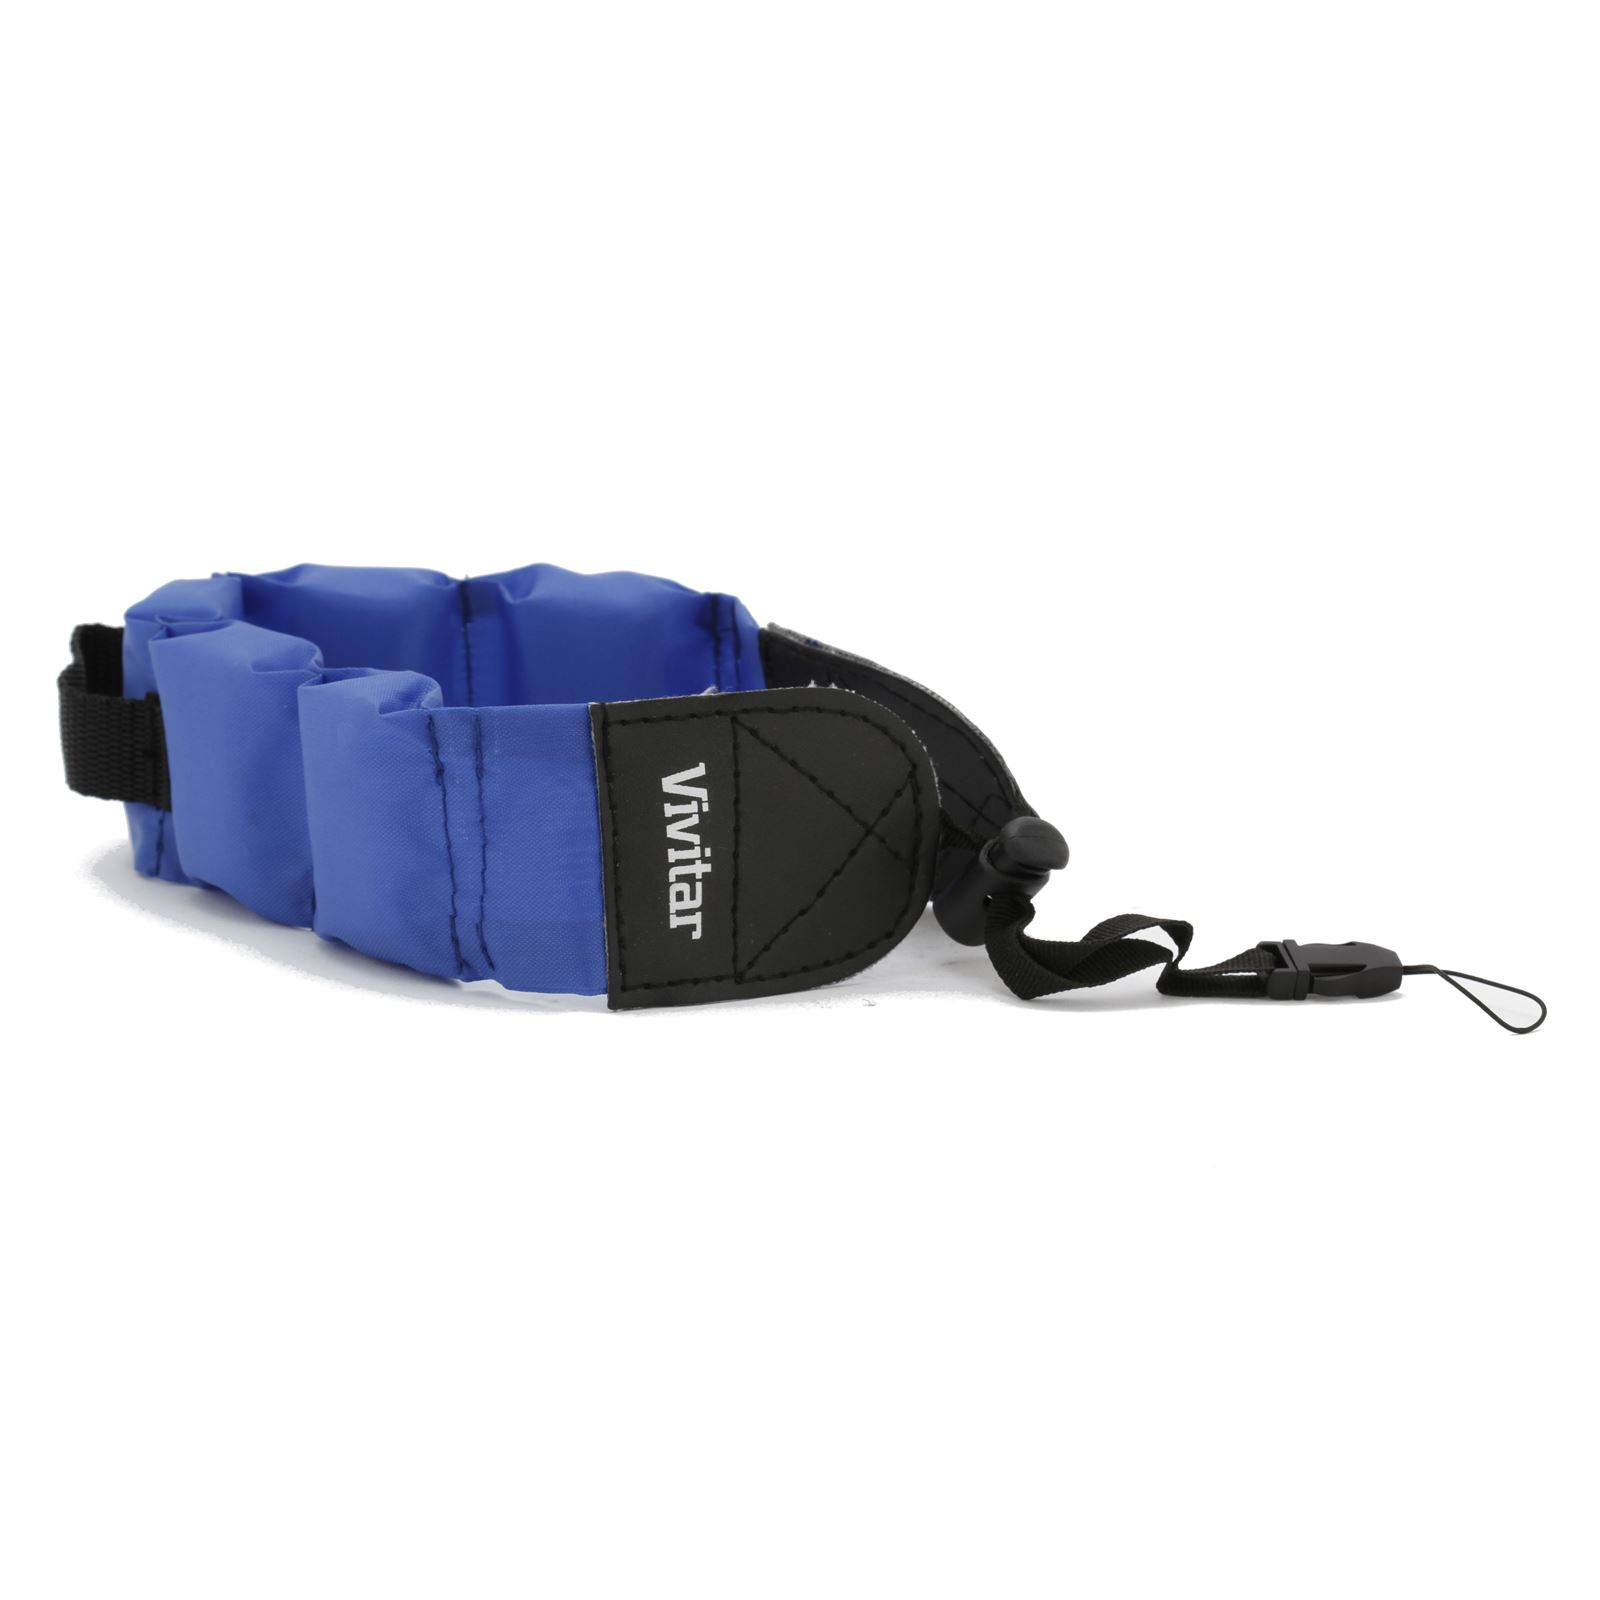 Floating Strap For Underwater Cameras - Keeps Cameras Afloat And Easy To Find In The Water (Blue)